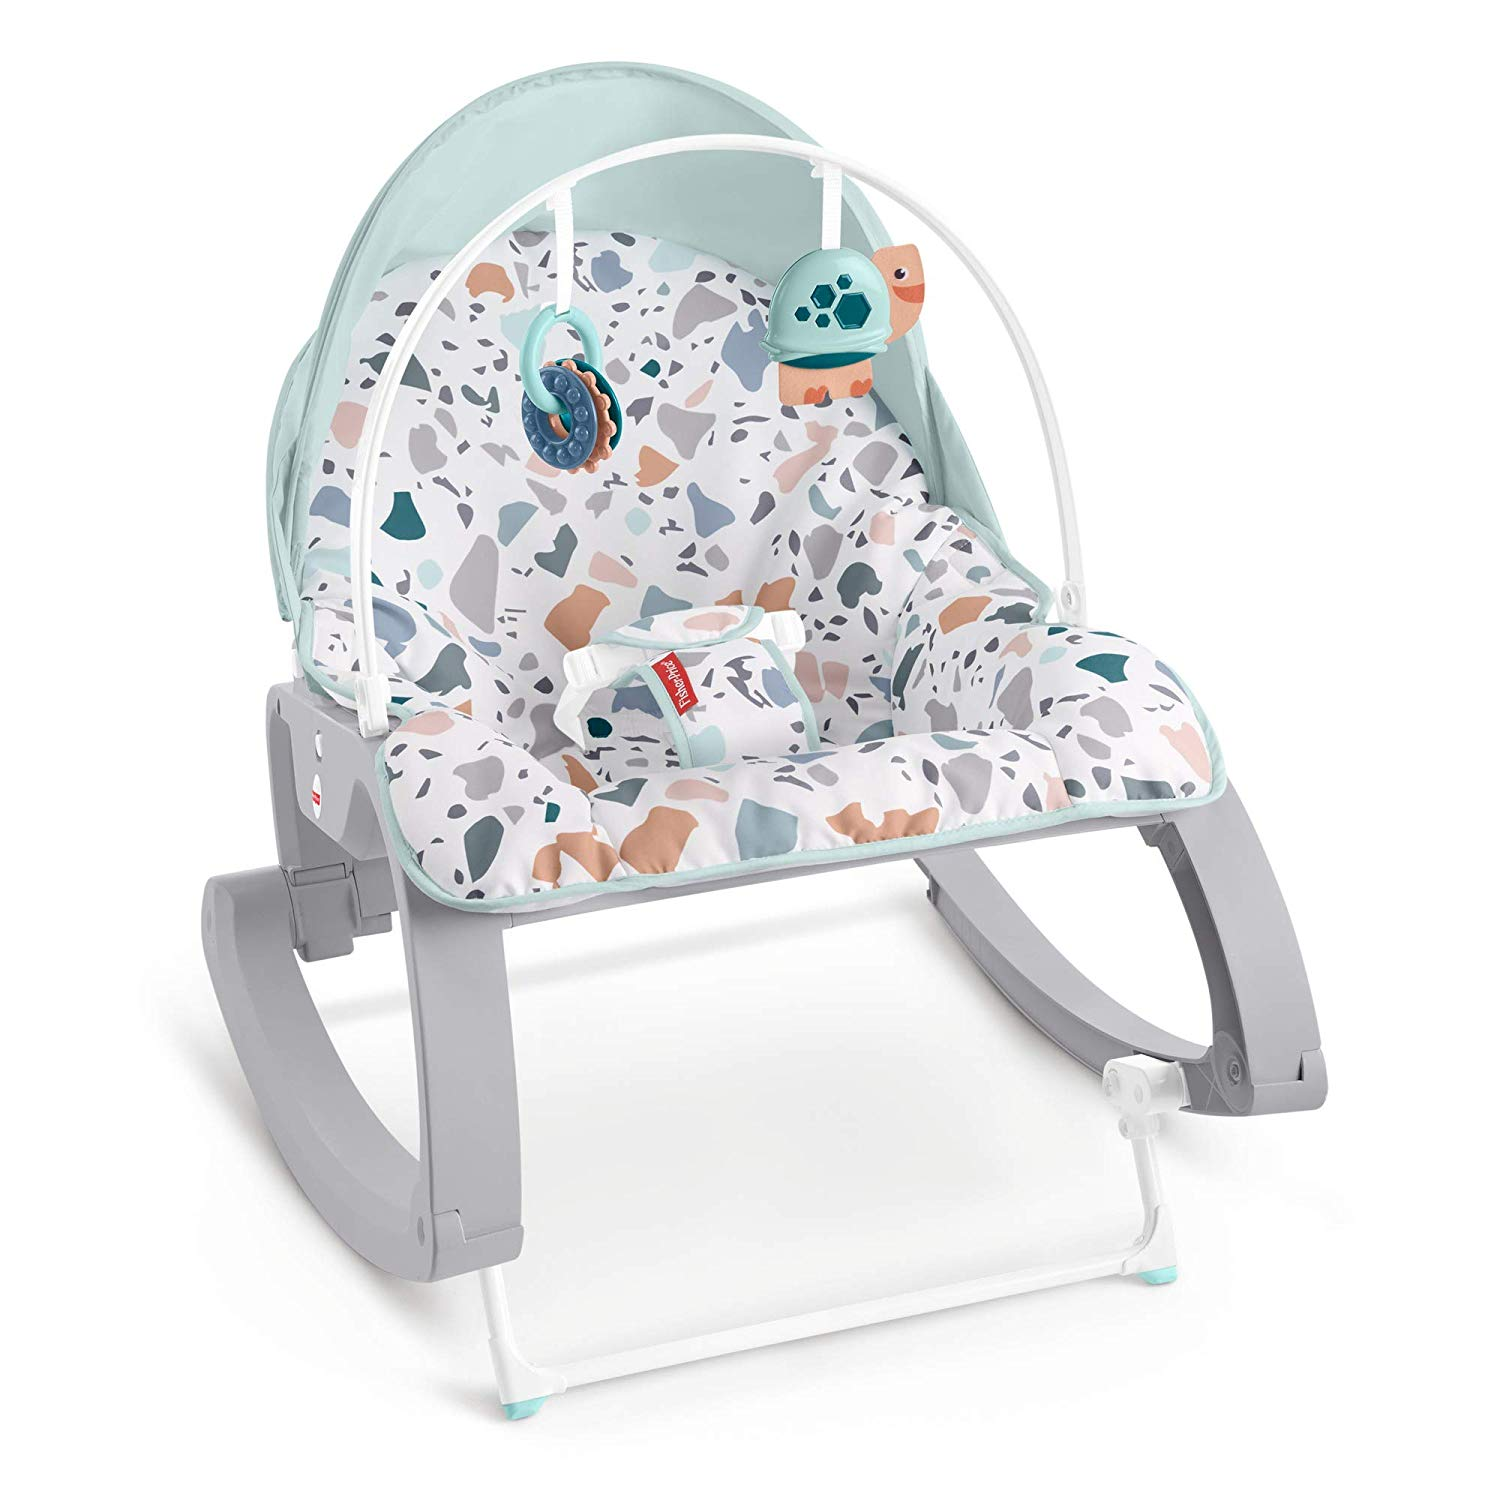 Deluxe Baby Vippe-stol